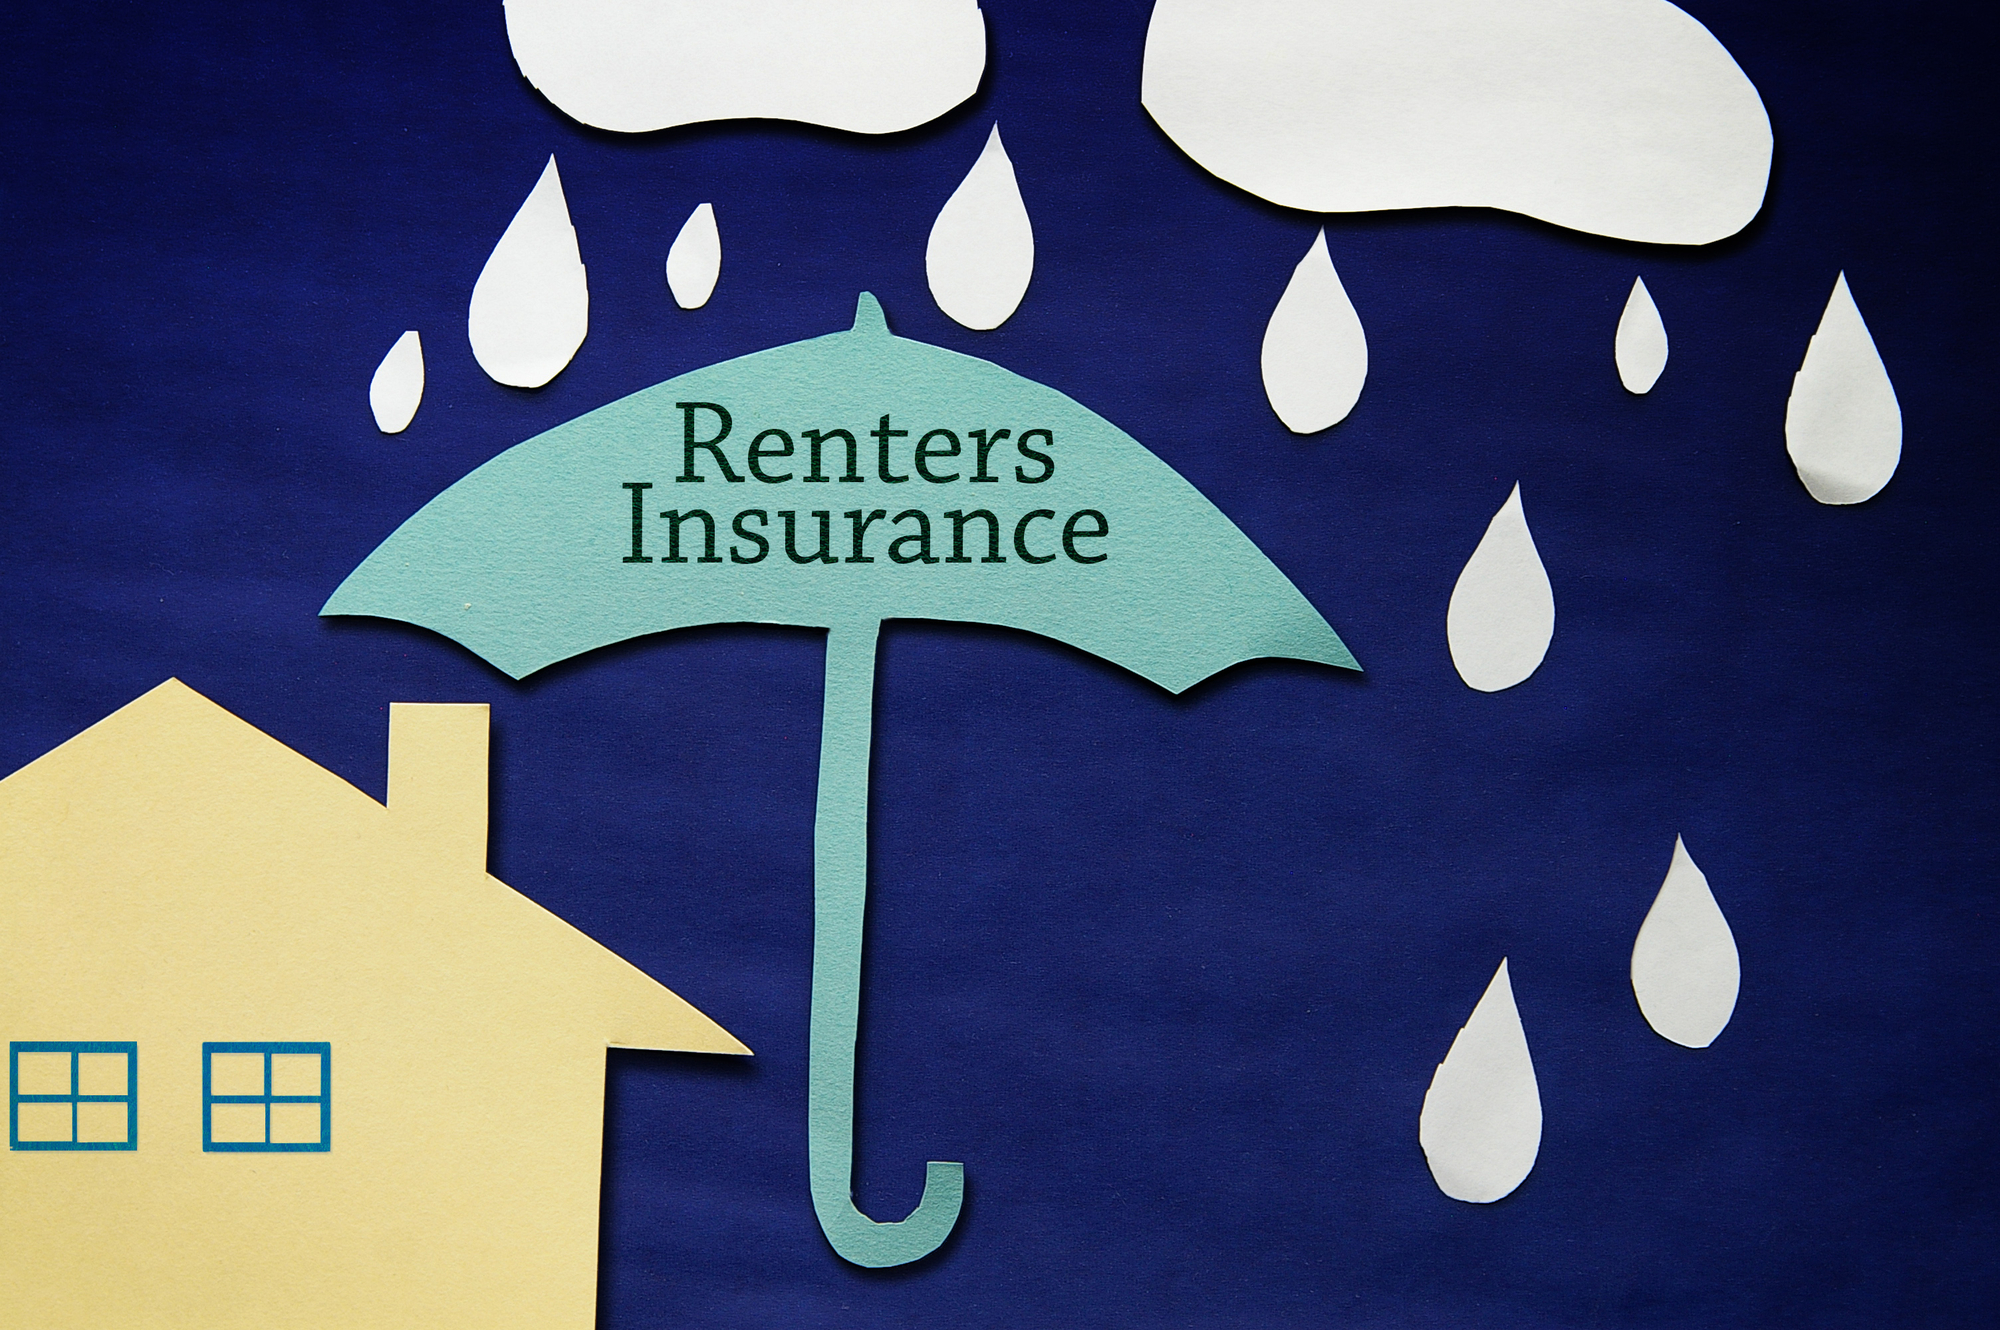 Renters Insurance house